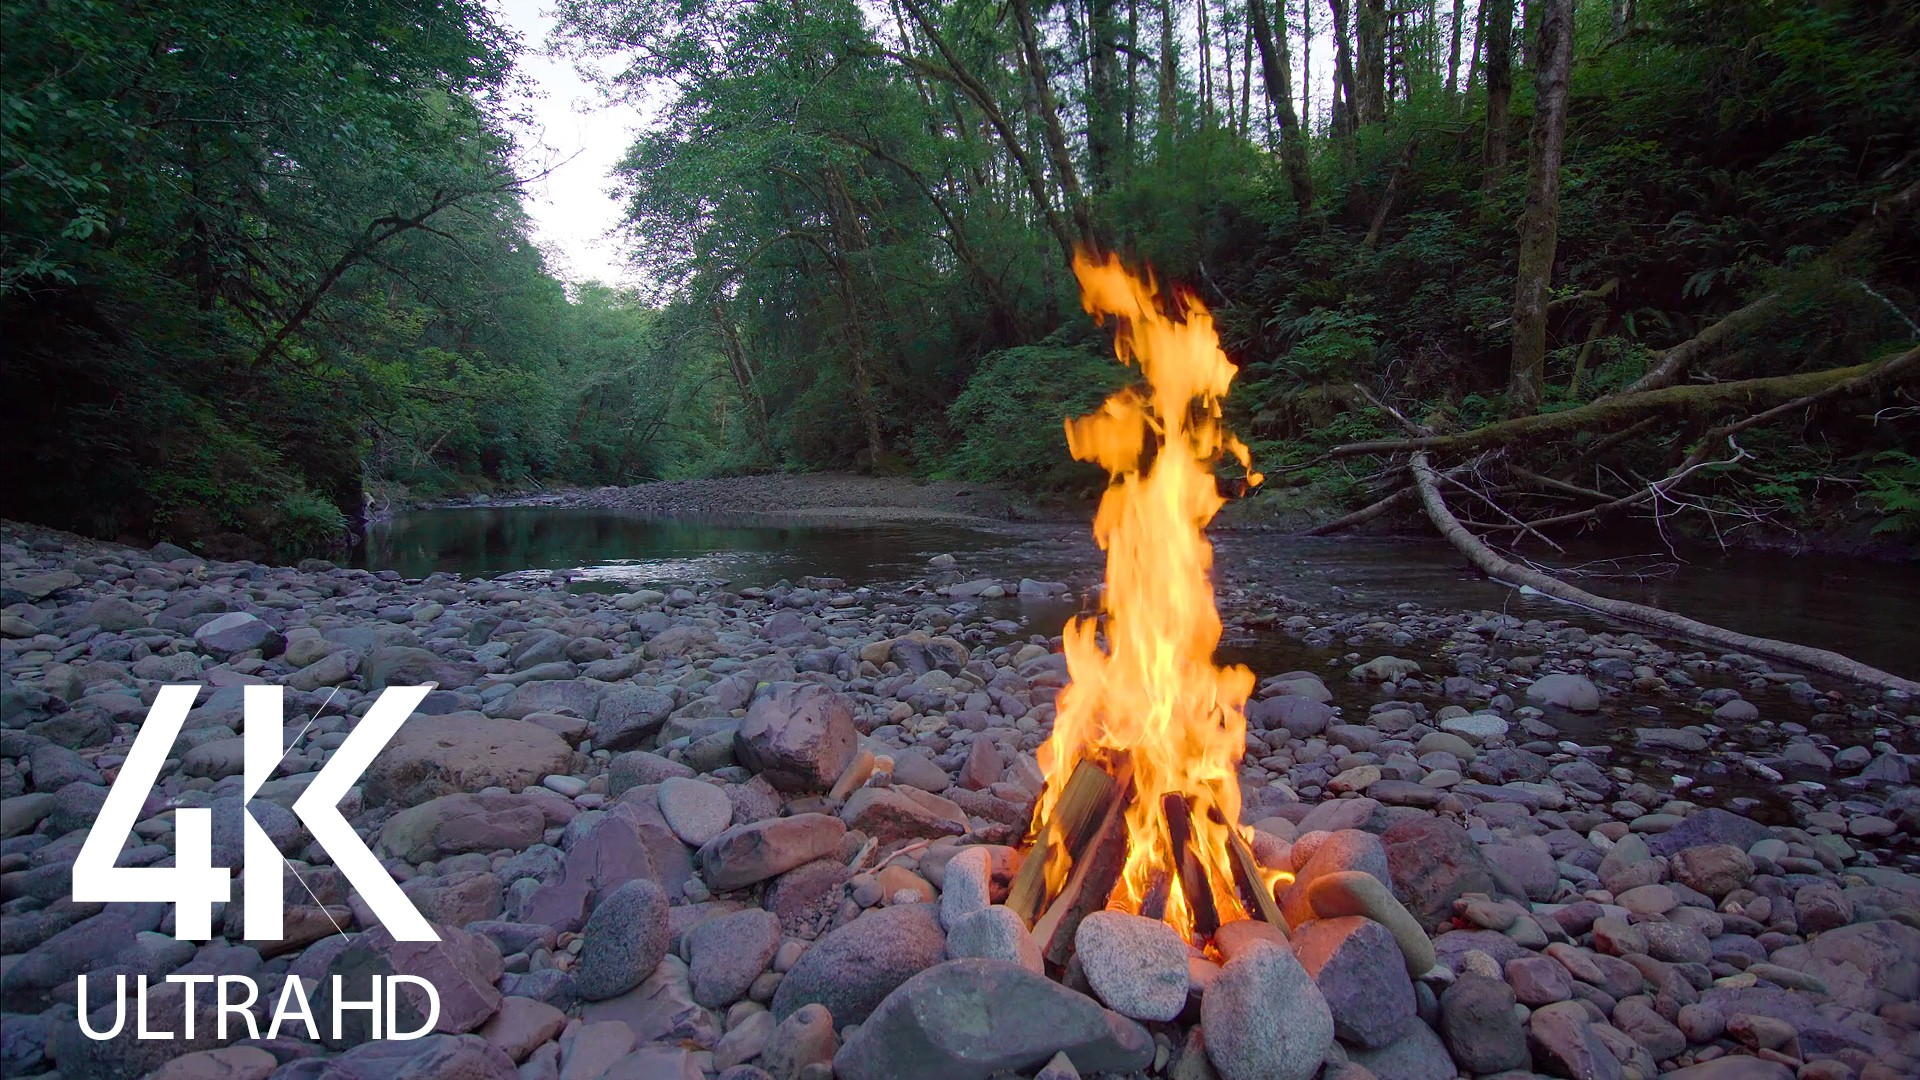 River and Campfire Unity. Part 1